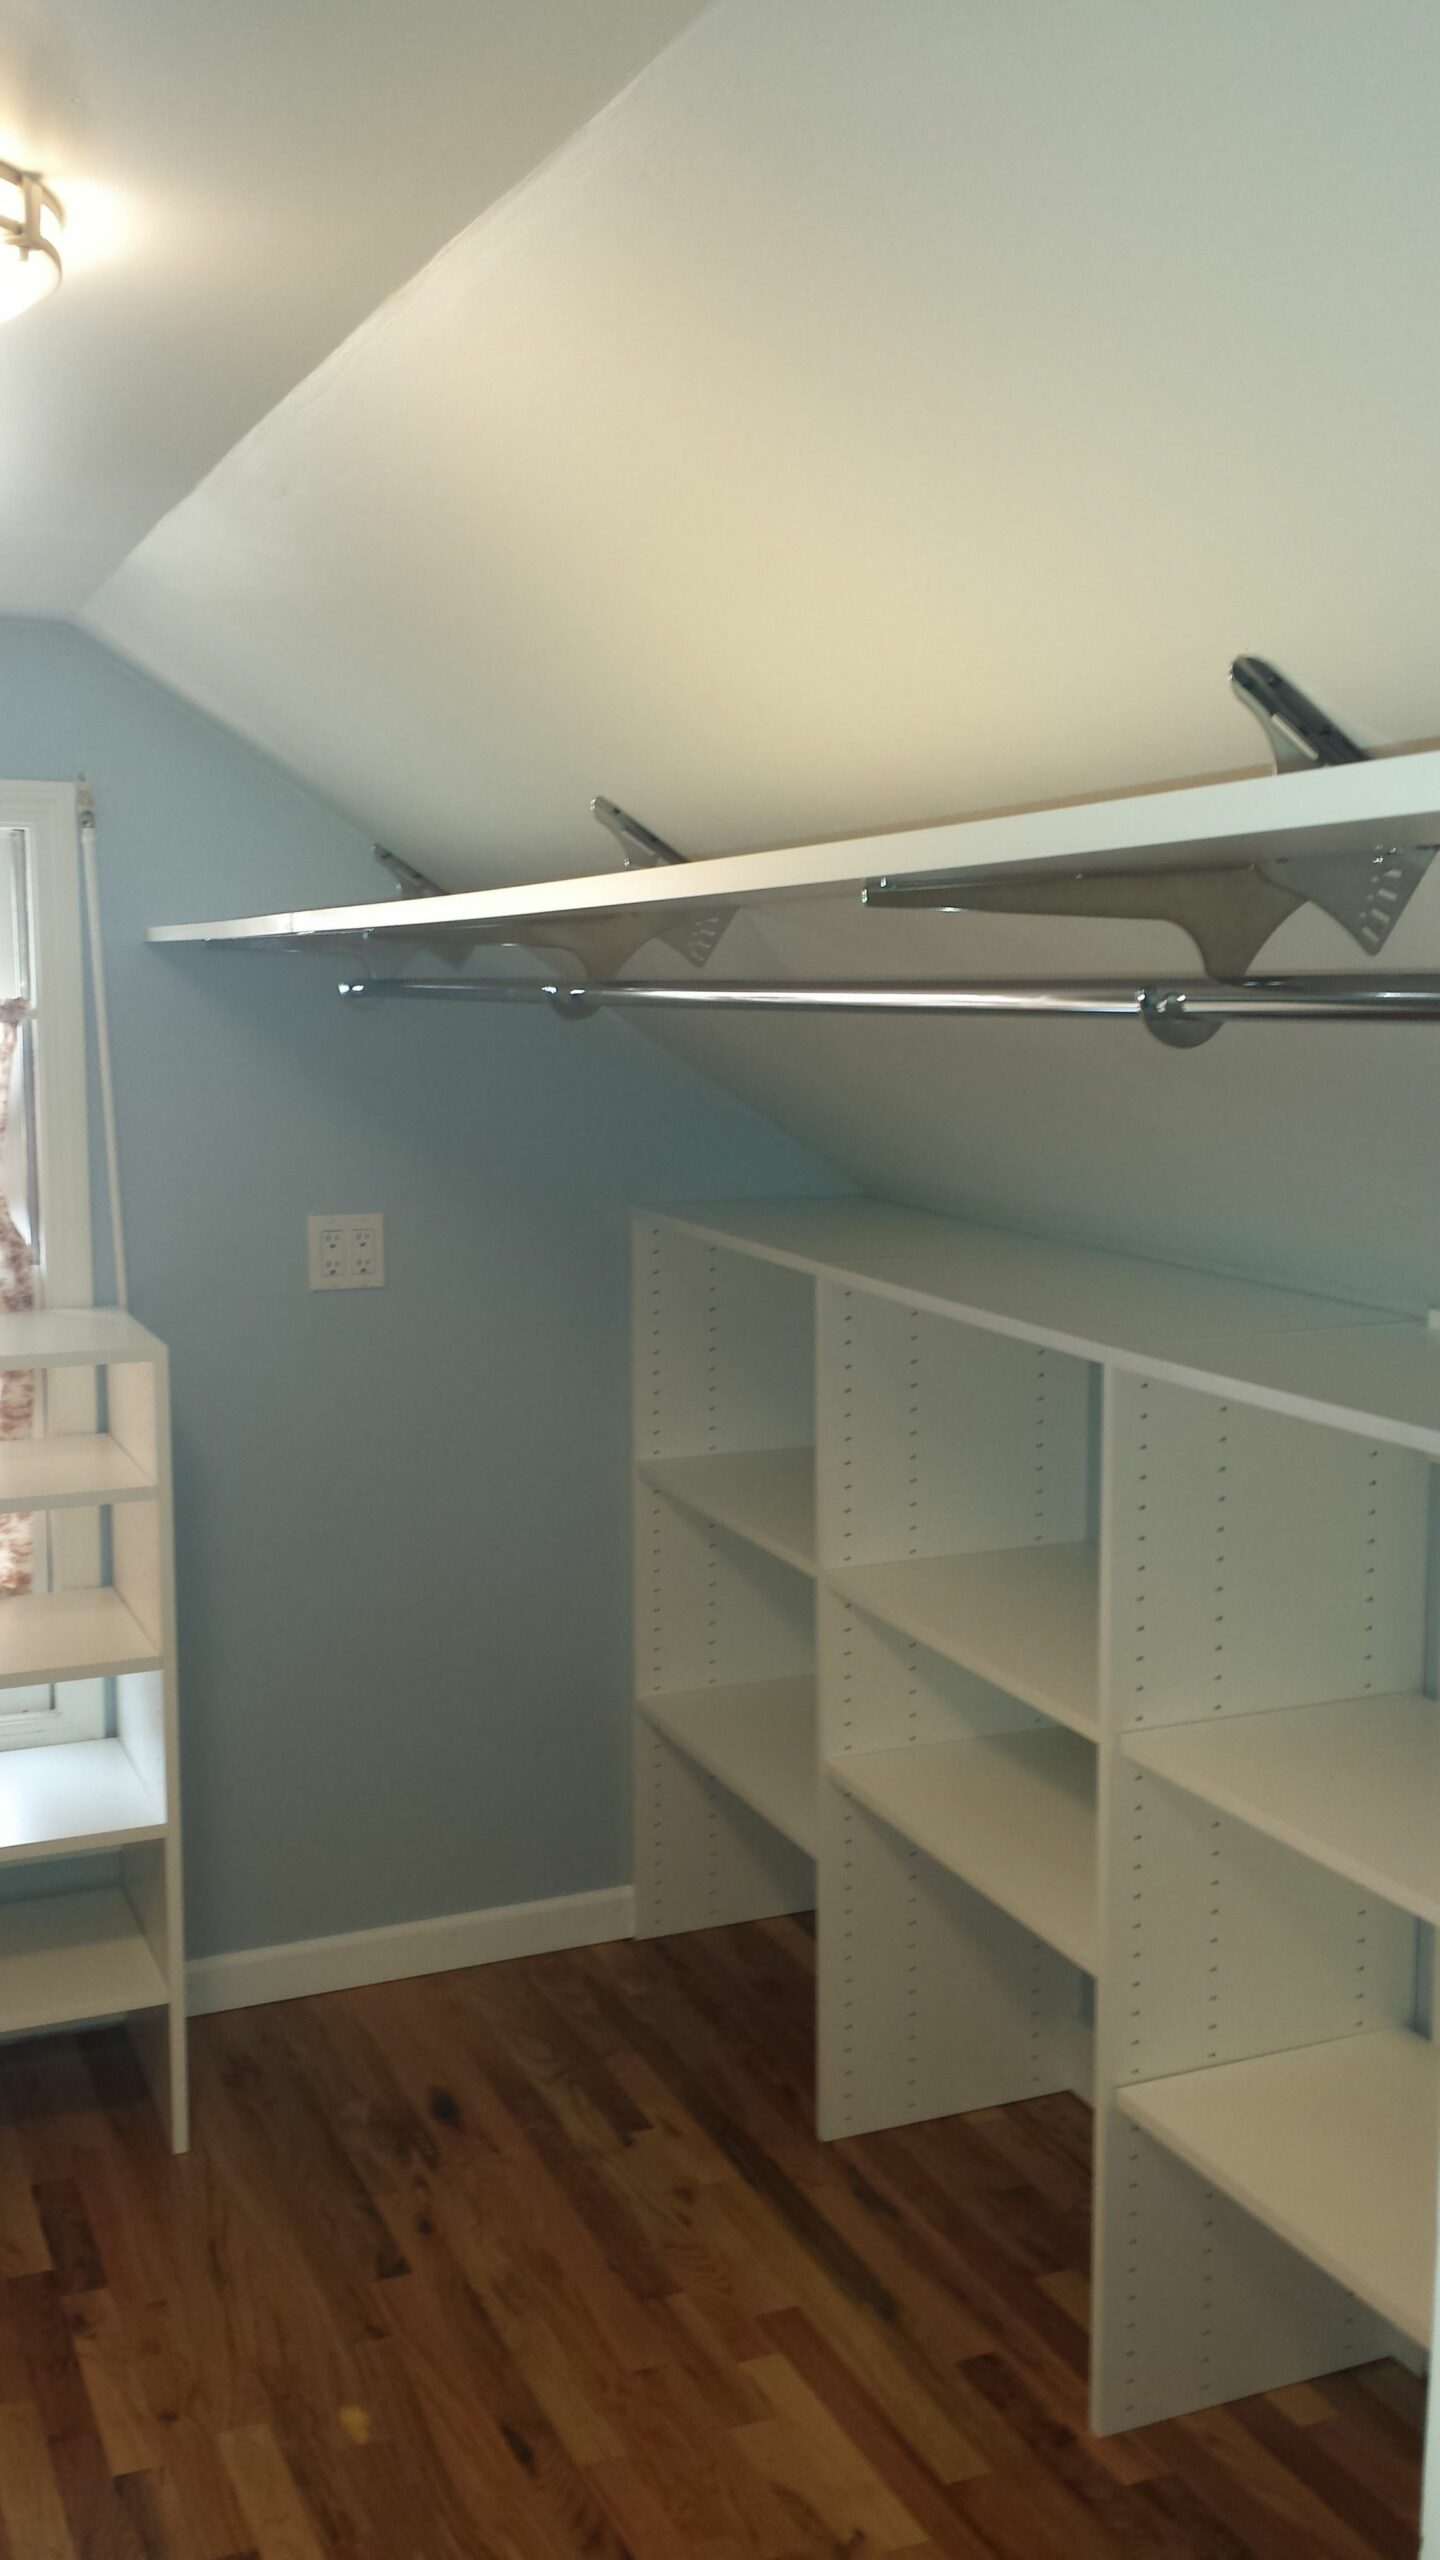 Angled brackets used to maximize space in attic closet. | Attic ..